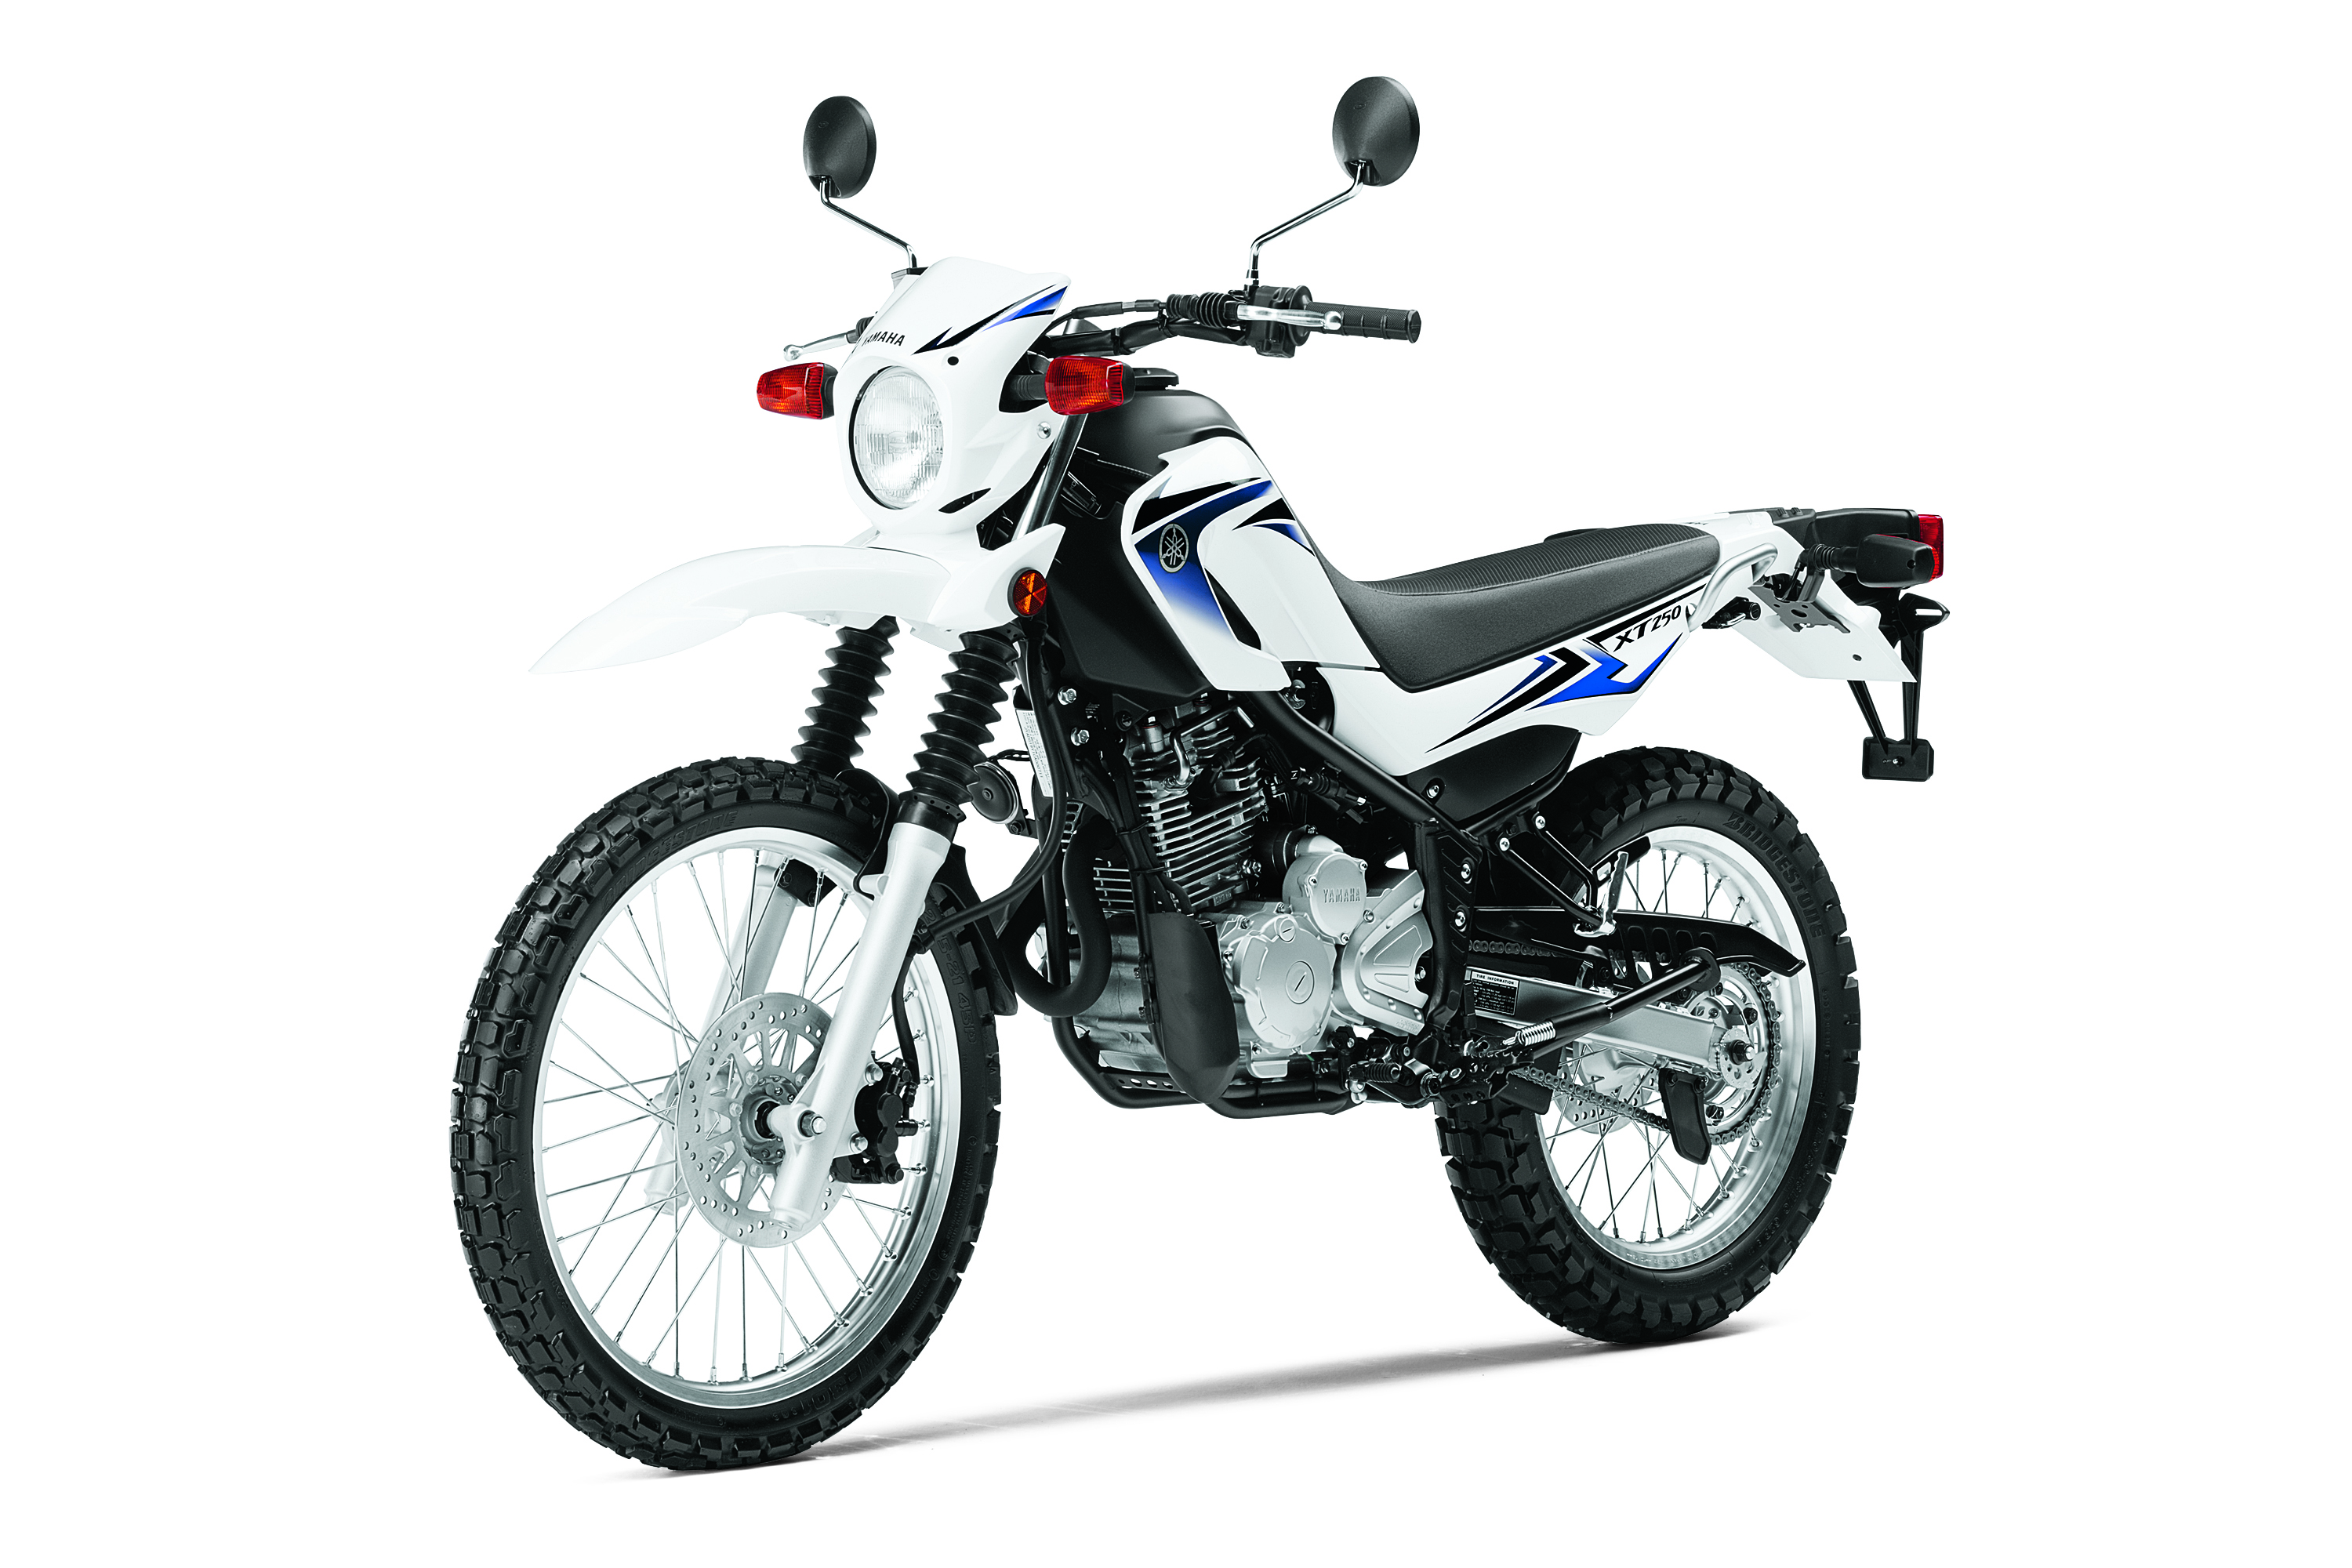 Yamaha Xt250 And Tw200 Dual Sports Announced